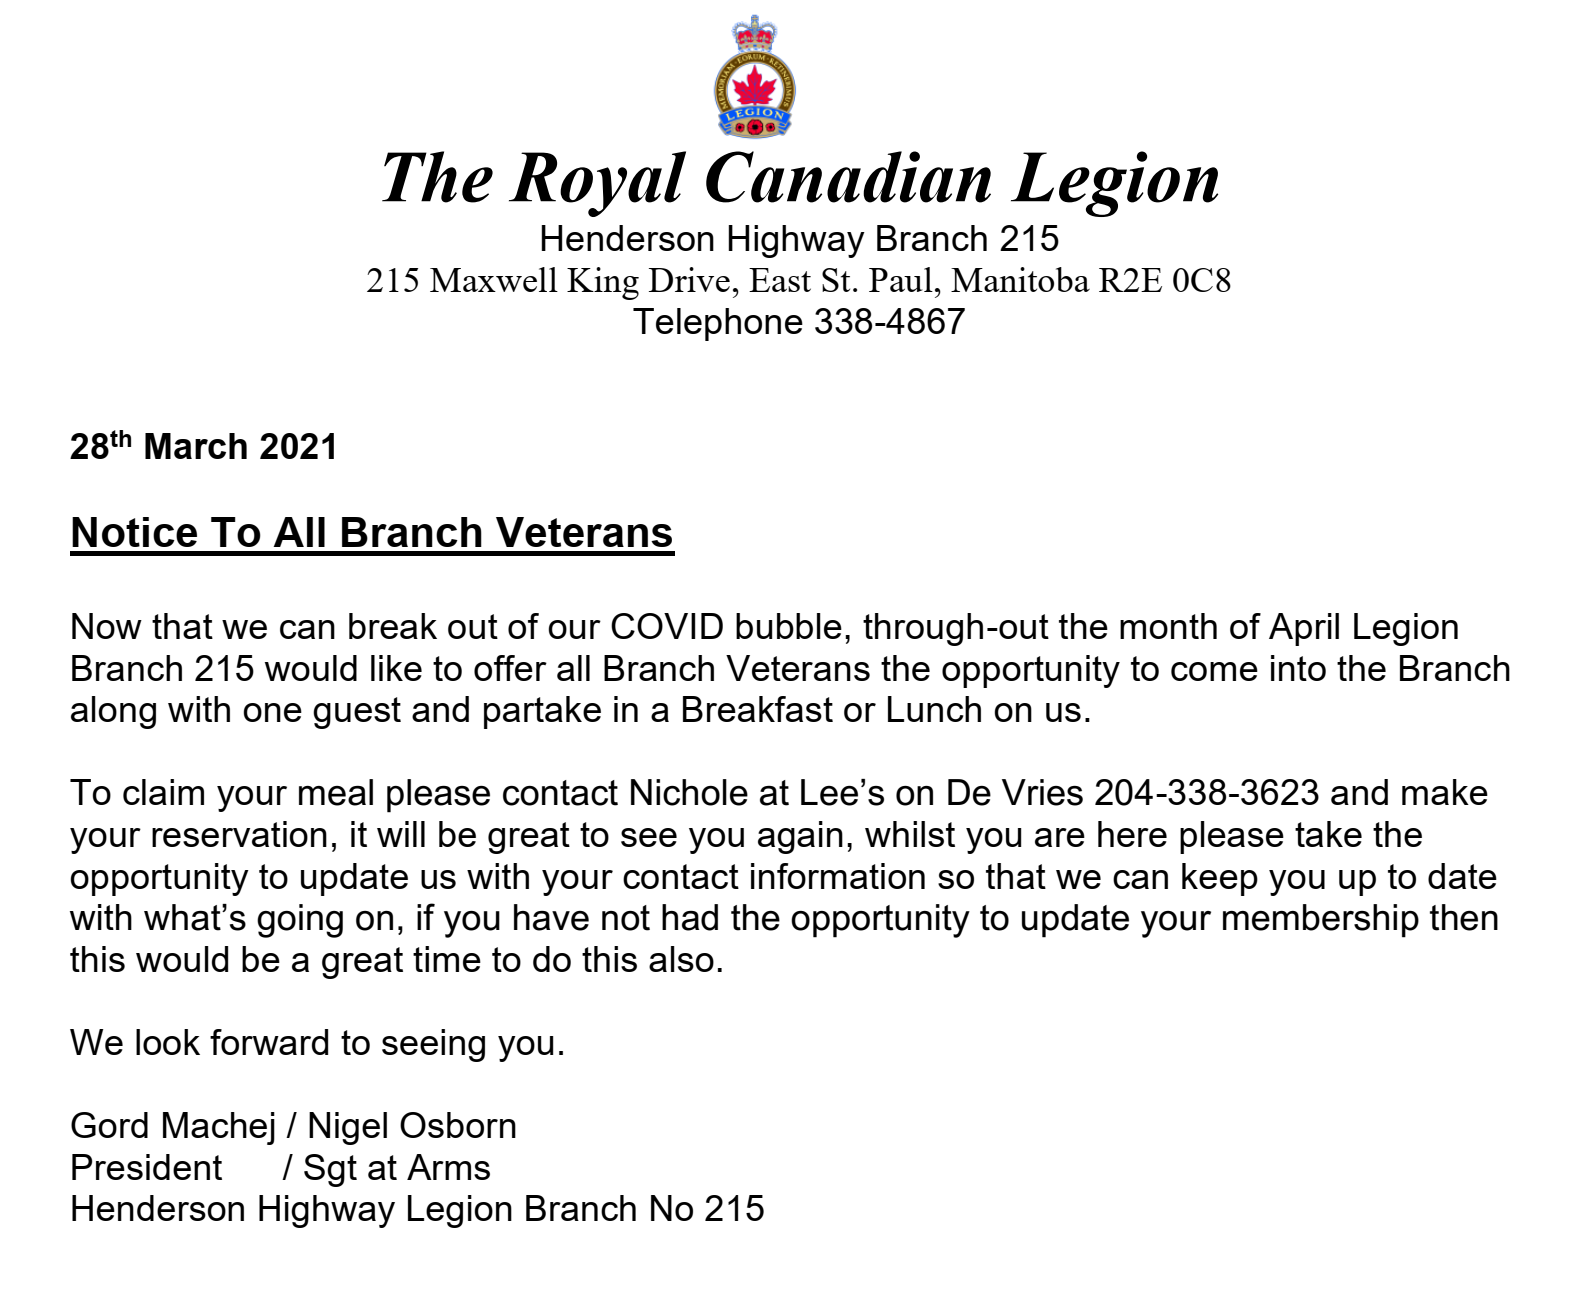 VETERANS MEAL HAS BEEN EXTENDED MONTH OF MAY